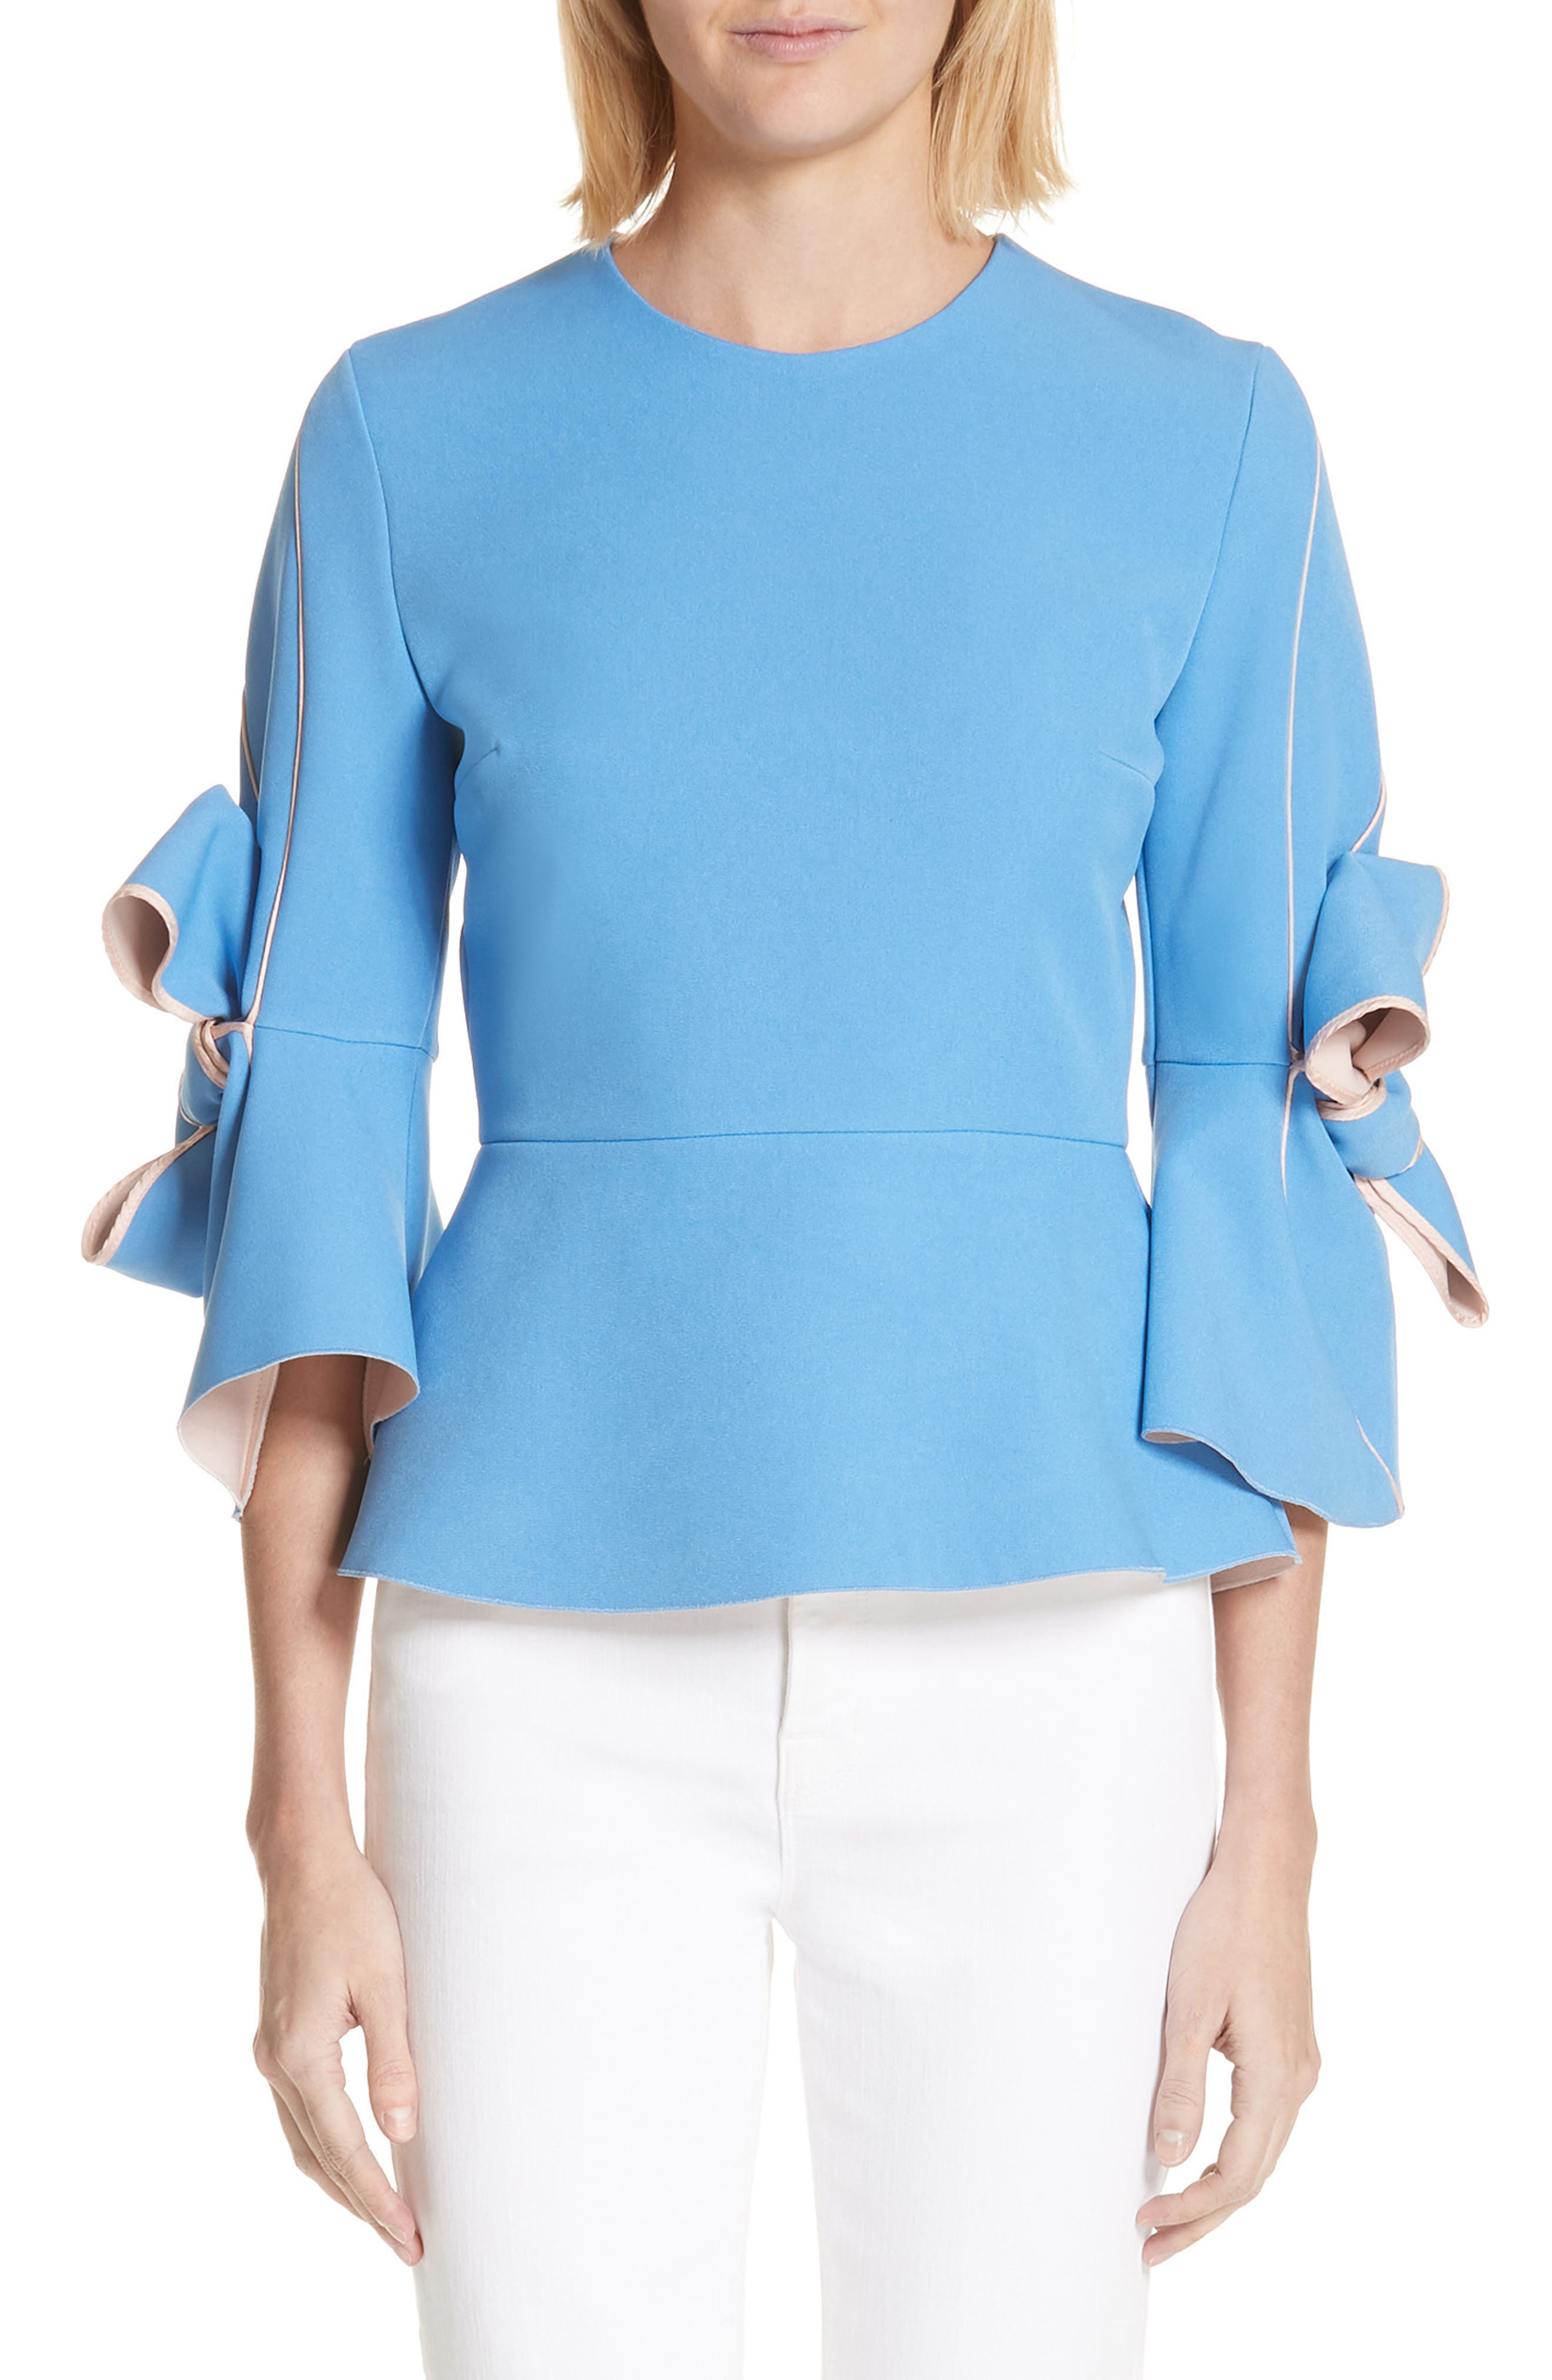 Kemi Bow Trim Top,                             Main thumbnail 1, color,                             400